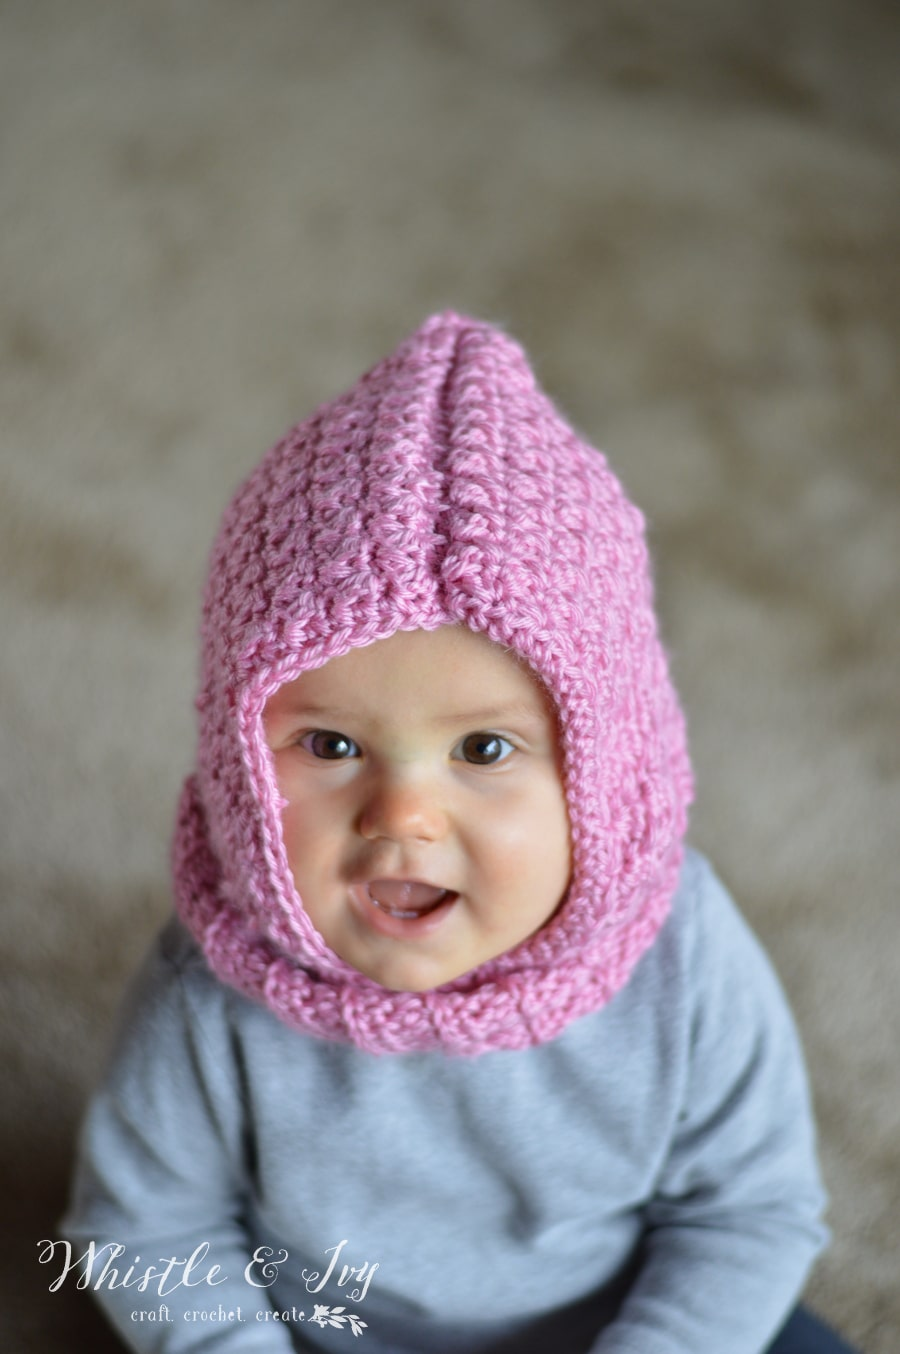 Crochet Baby Hooded Cowl - Free Crochet Pattern - Whistle and Ivy